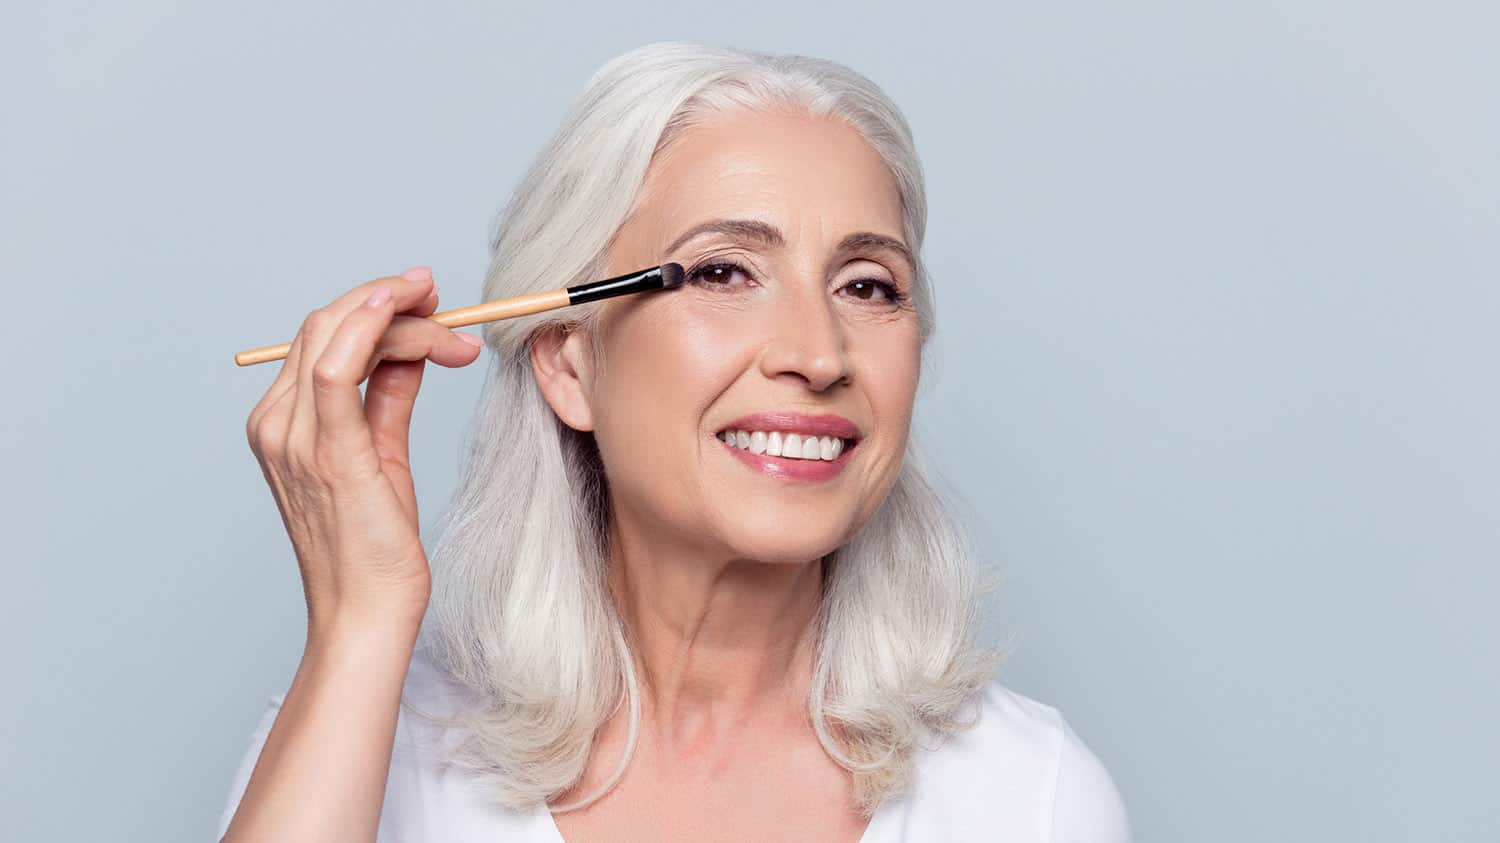 Forget the Anti-Aging BS! Makeup for Women Over 8 is About